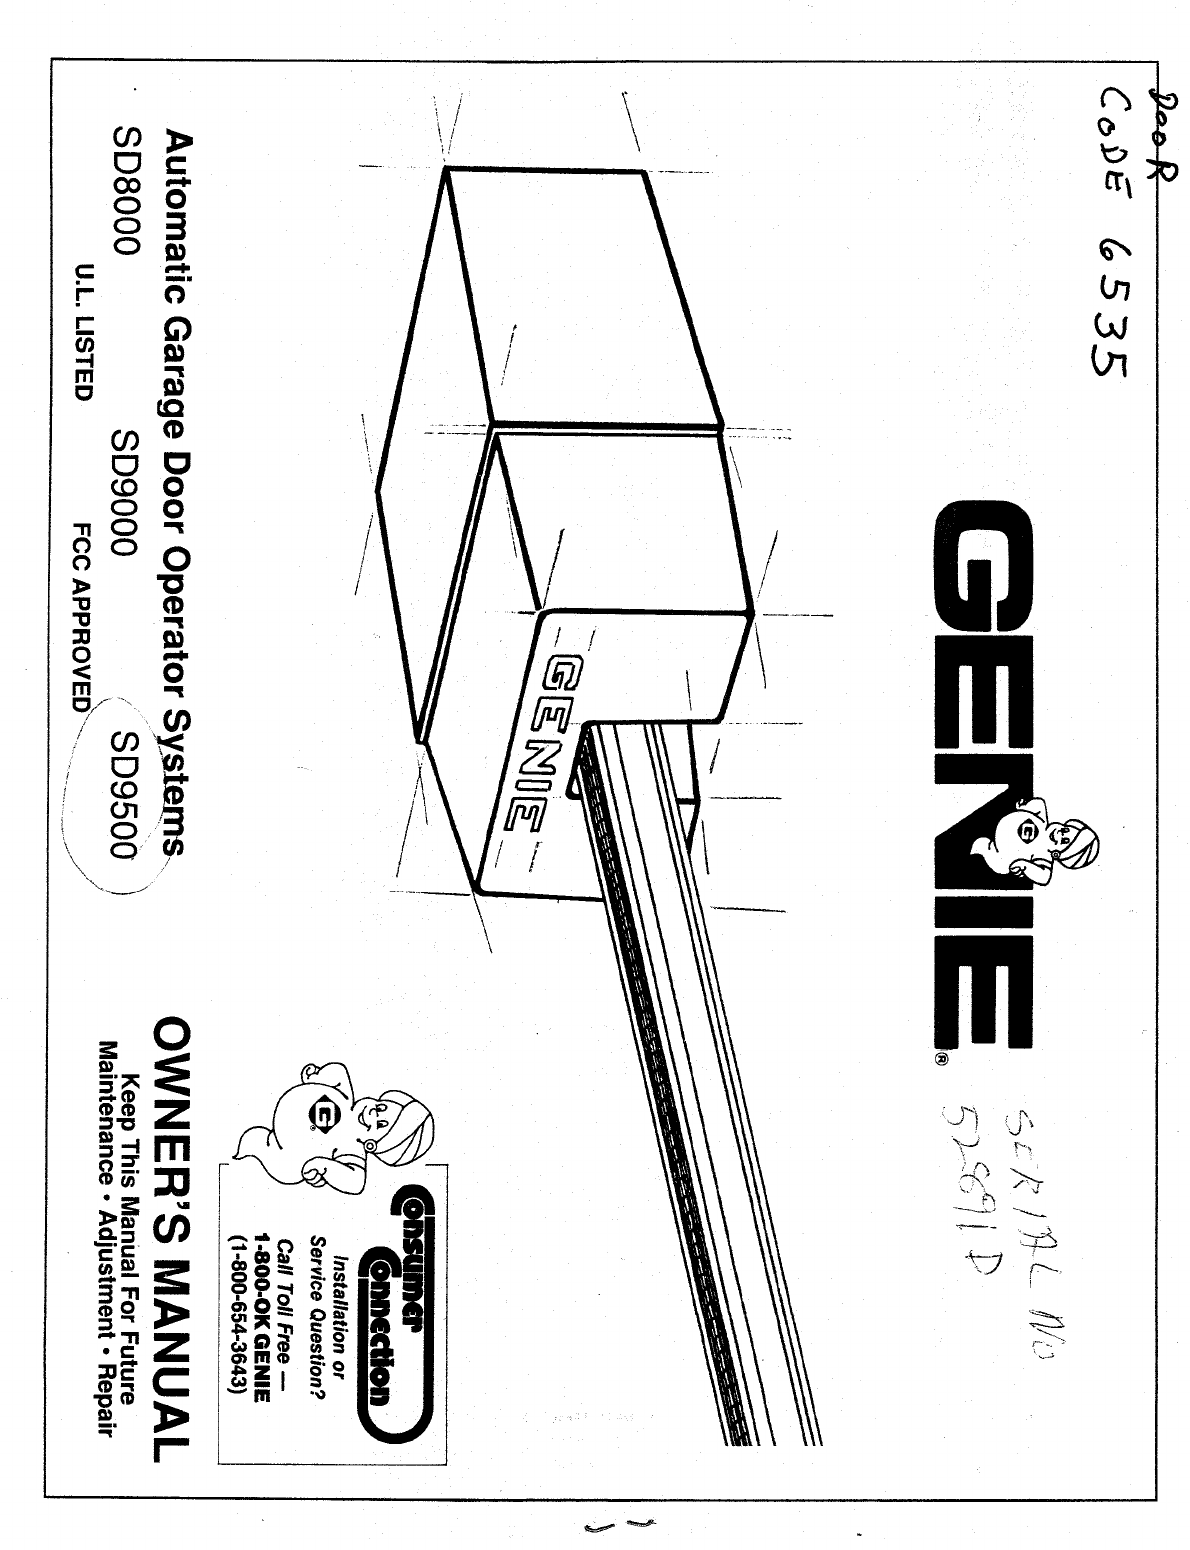 Genie Garage Door Opener Sd8000 User Guide